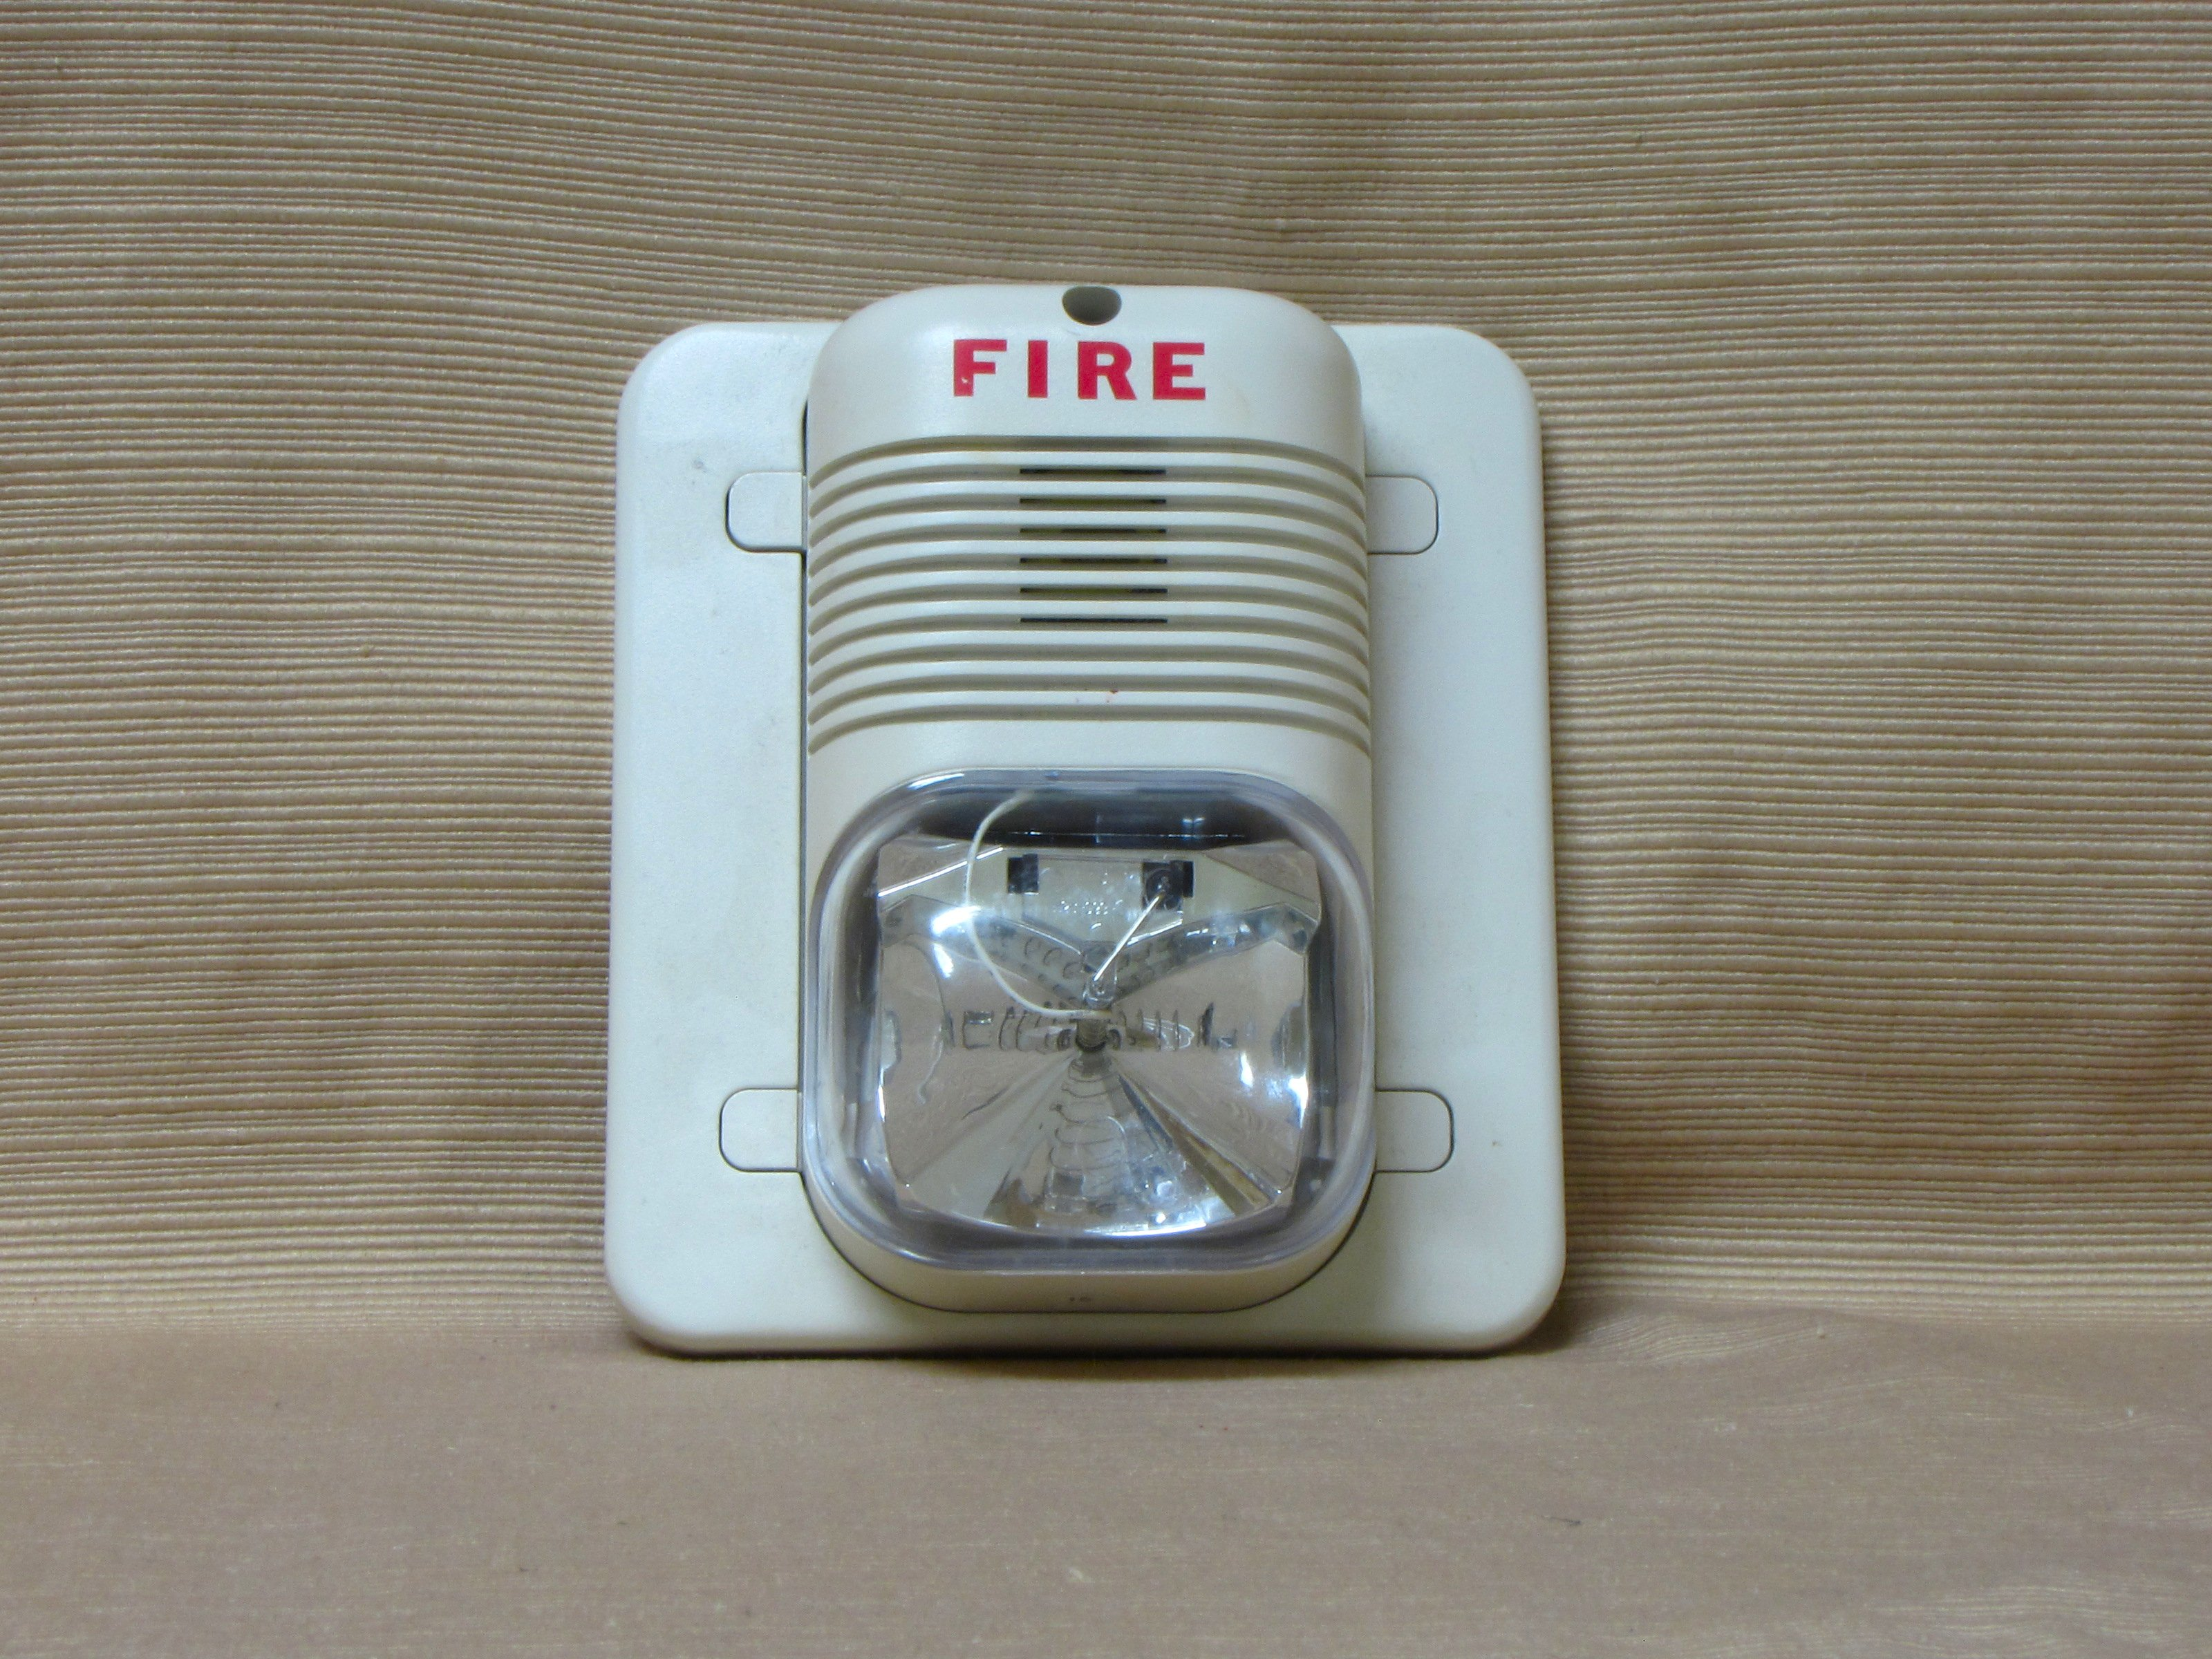 System Sensor P2RHKR Outdoor Horn Strobe p 177690 likewise Pre Wire For Ada Adaptability also Gentex Gec3 24wr likewise Notifier Fire Alarm Wiring Diagram likewise Fire Systems. on notifier fire alarm horn strobe